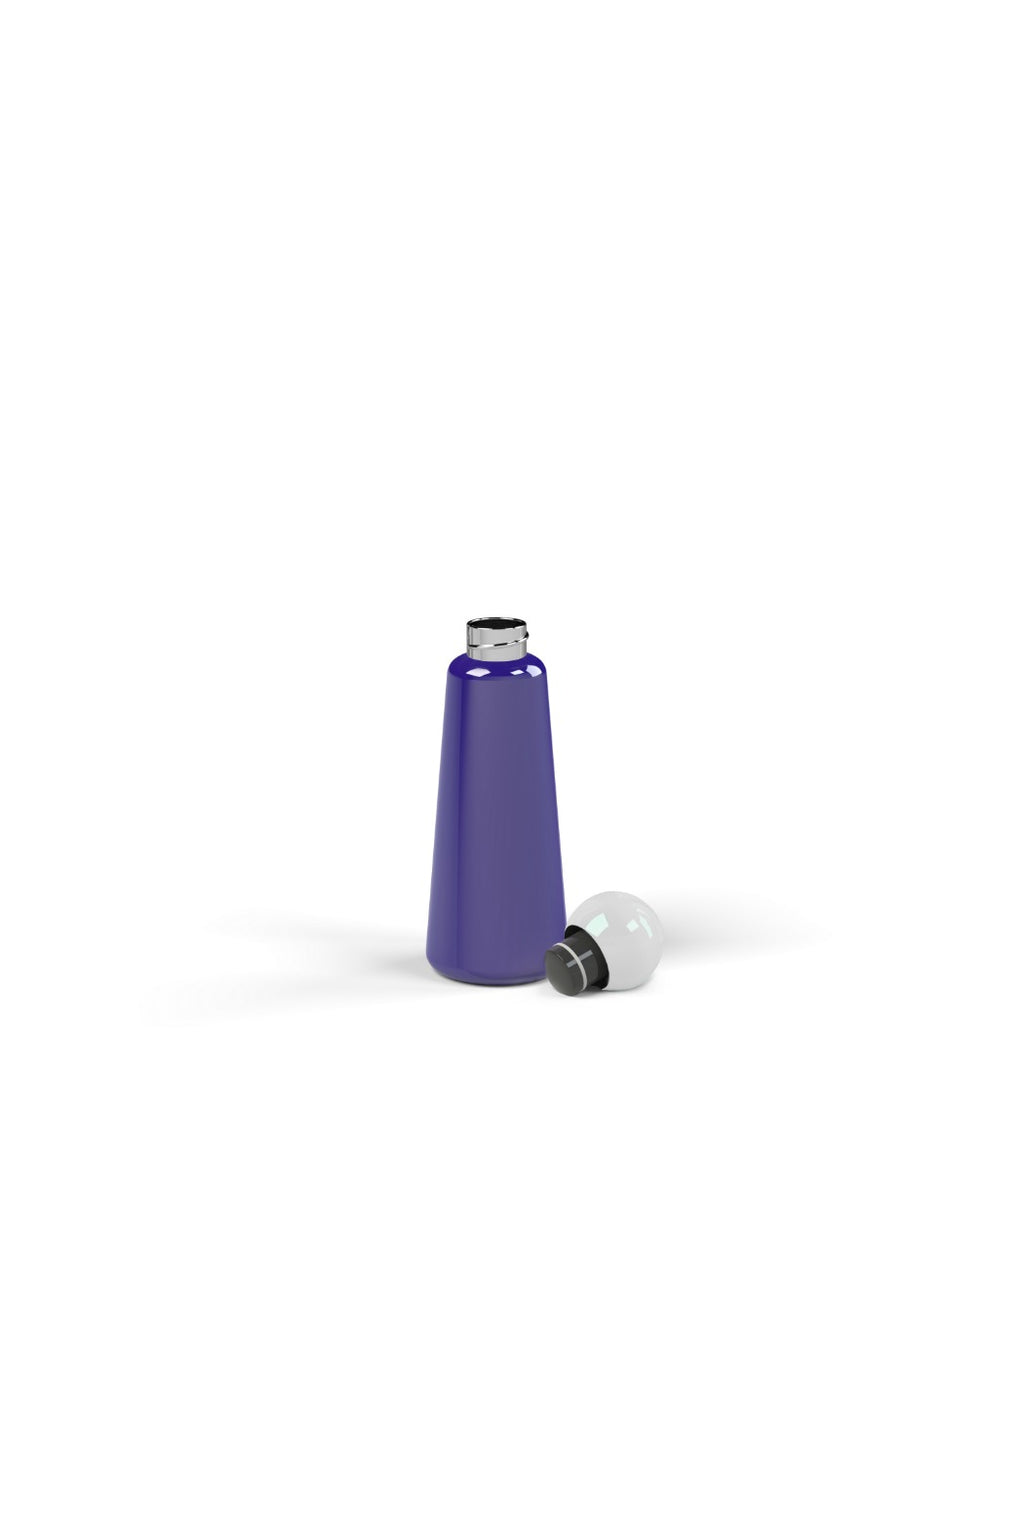 Lund London Skittle Bottle - Indigo